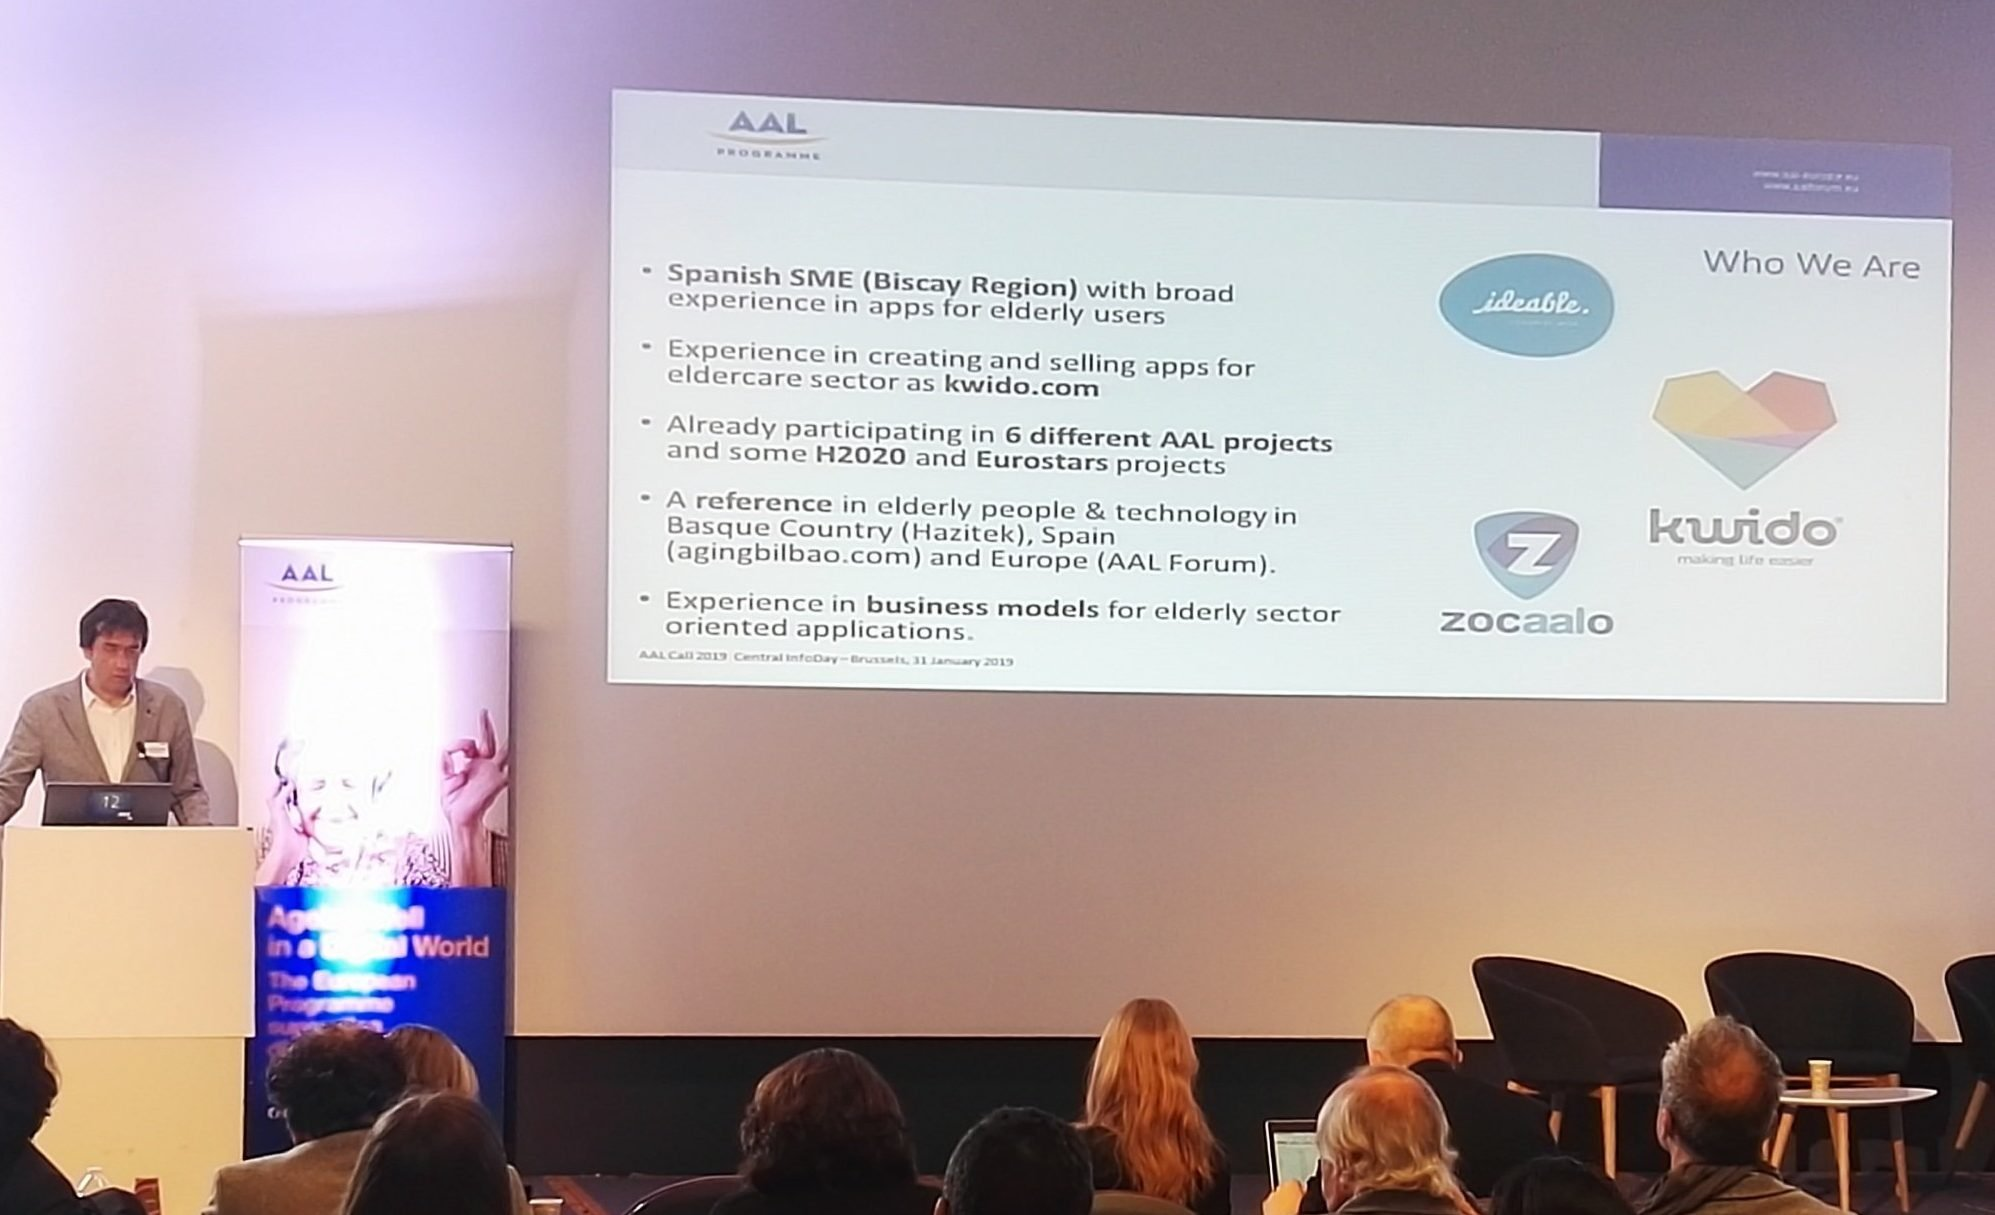 aal info day 2019